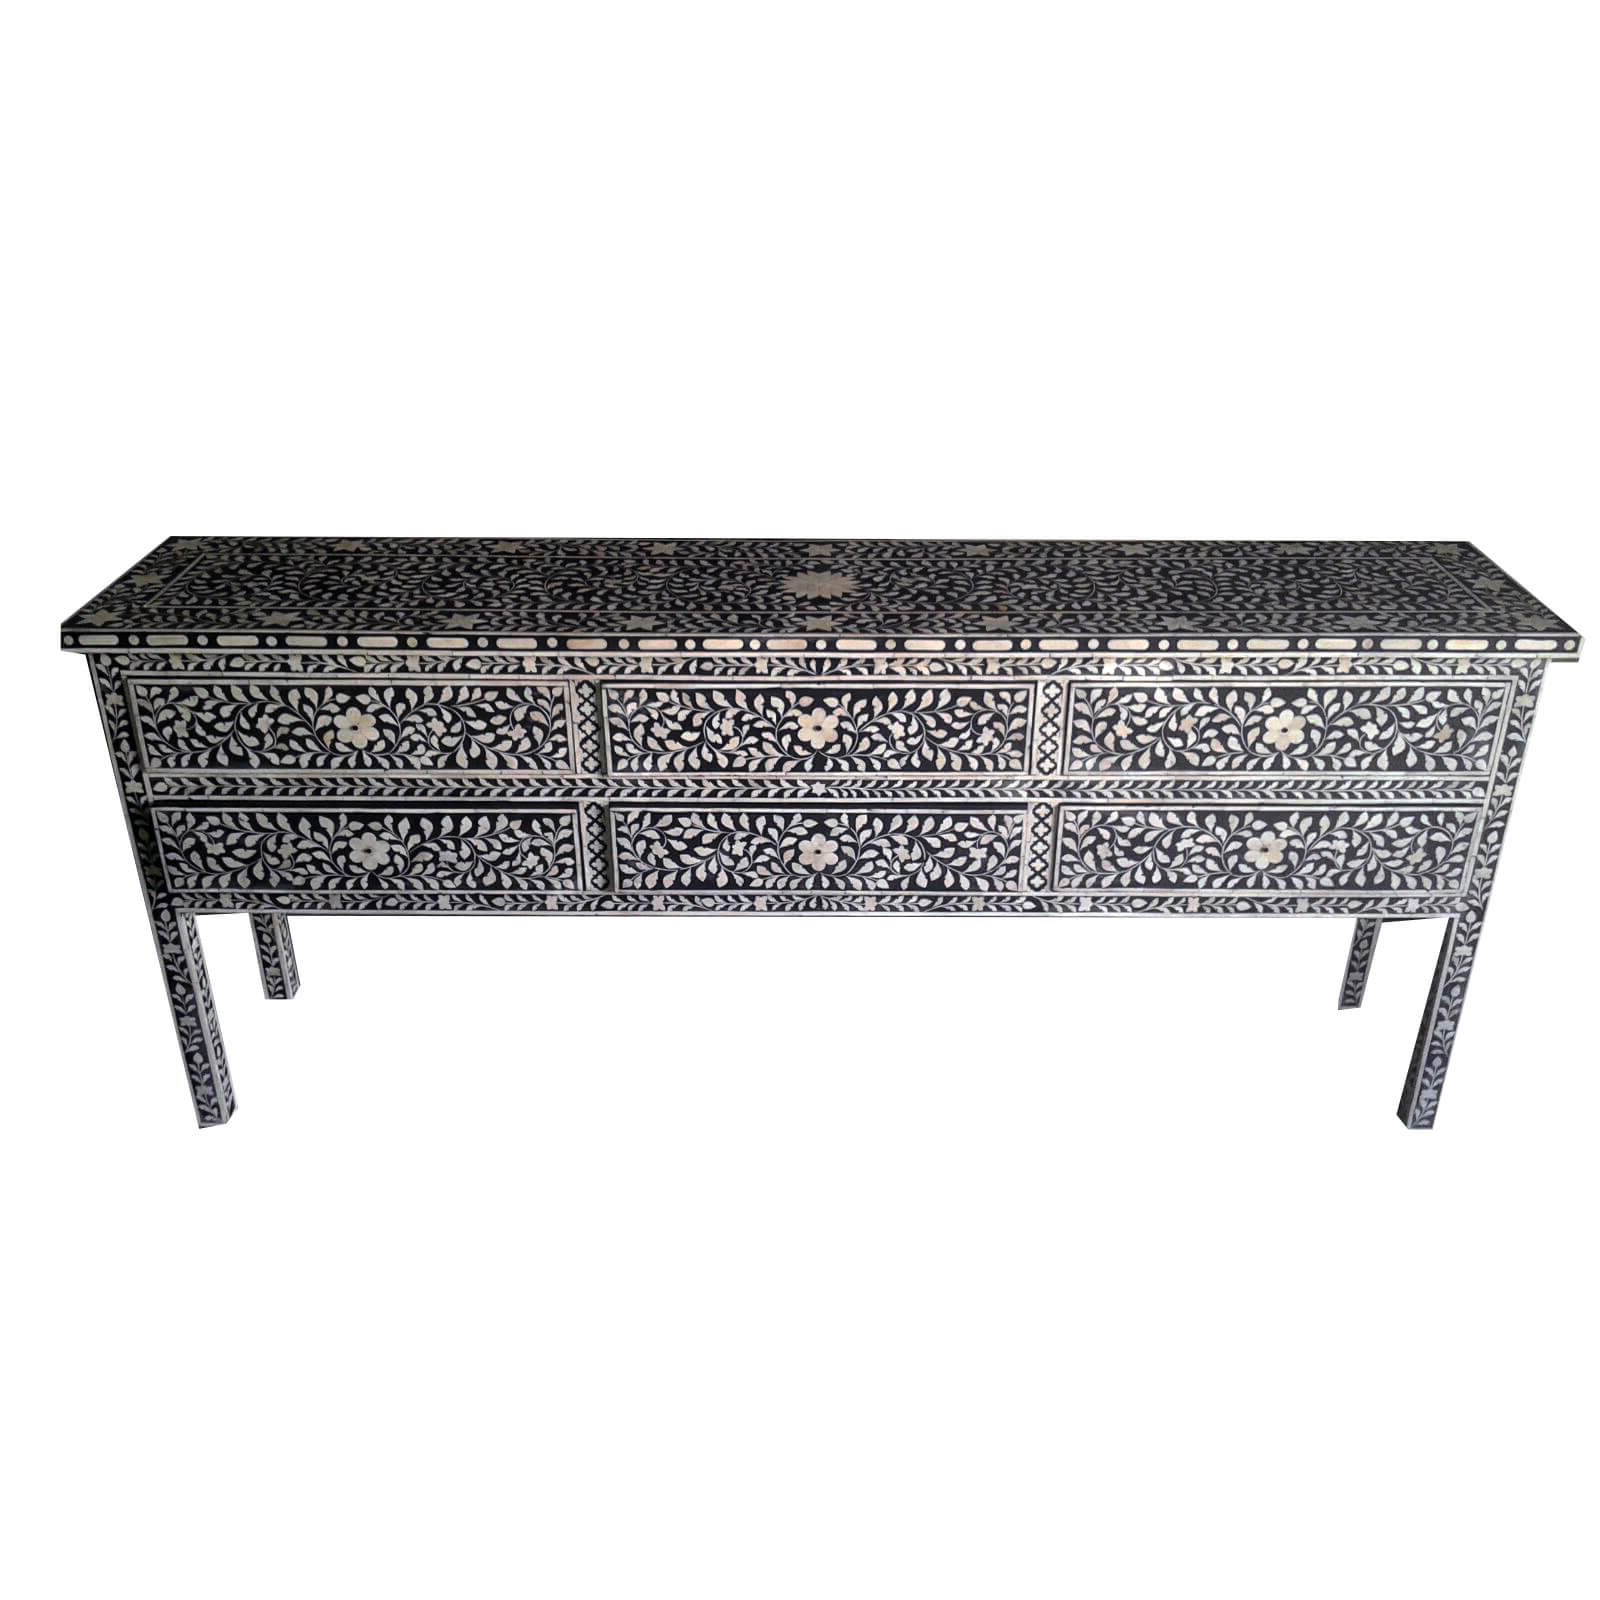 Indian Bone Inlay Furniture For Sale | Iris Furnishing Ltd Regarding Black And White Inlay Console Tables (Gallery 19 of 20)